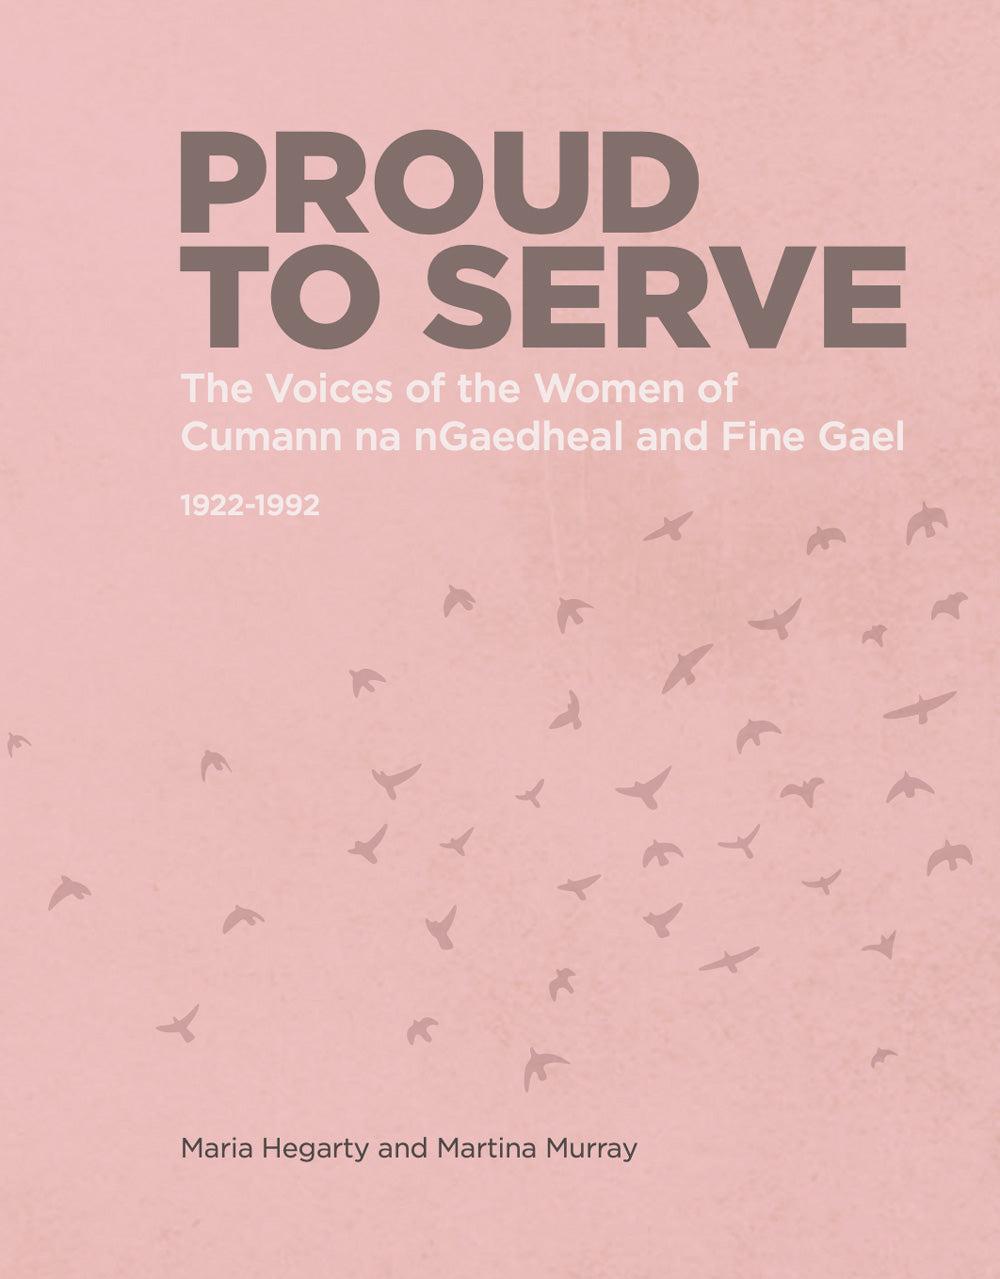 PROUD TO SERVE : The Voices of The Women of Cumann na nGaedheal and Fine Gael: 1922-1992